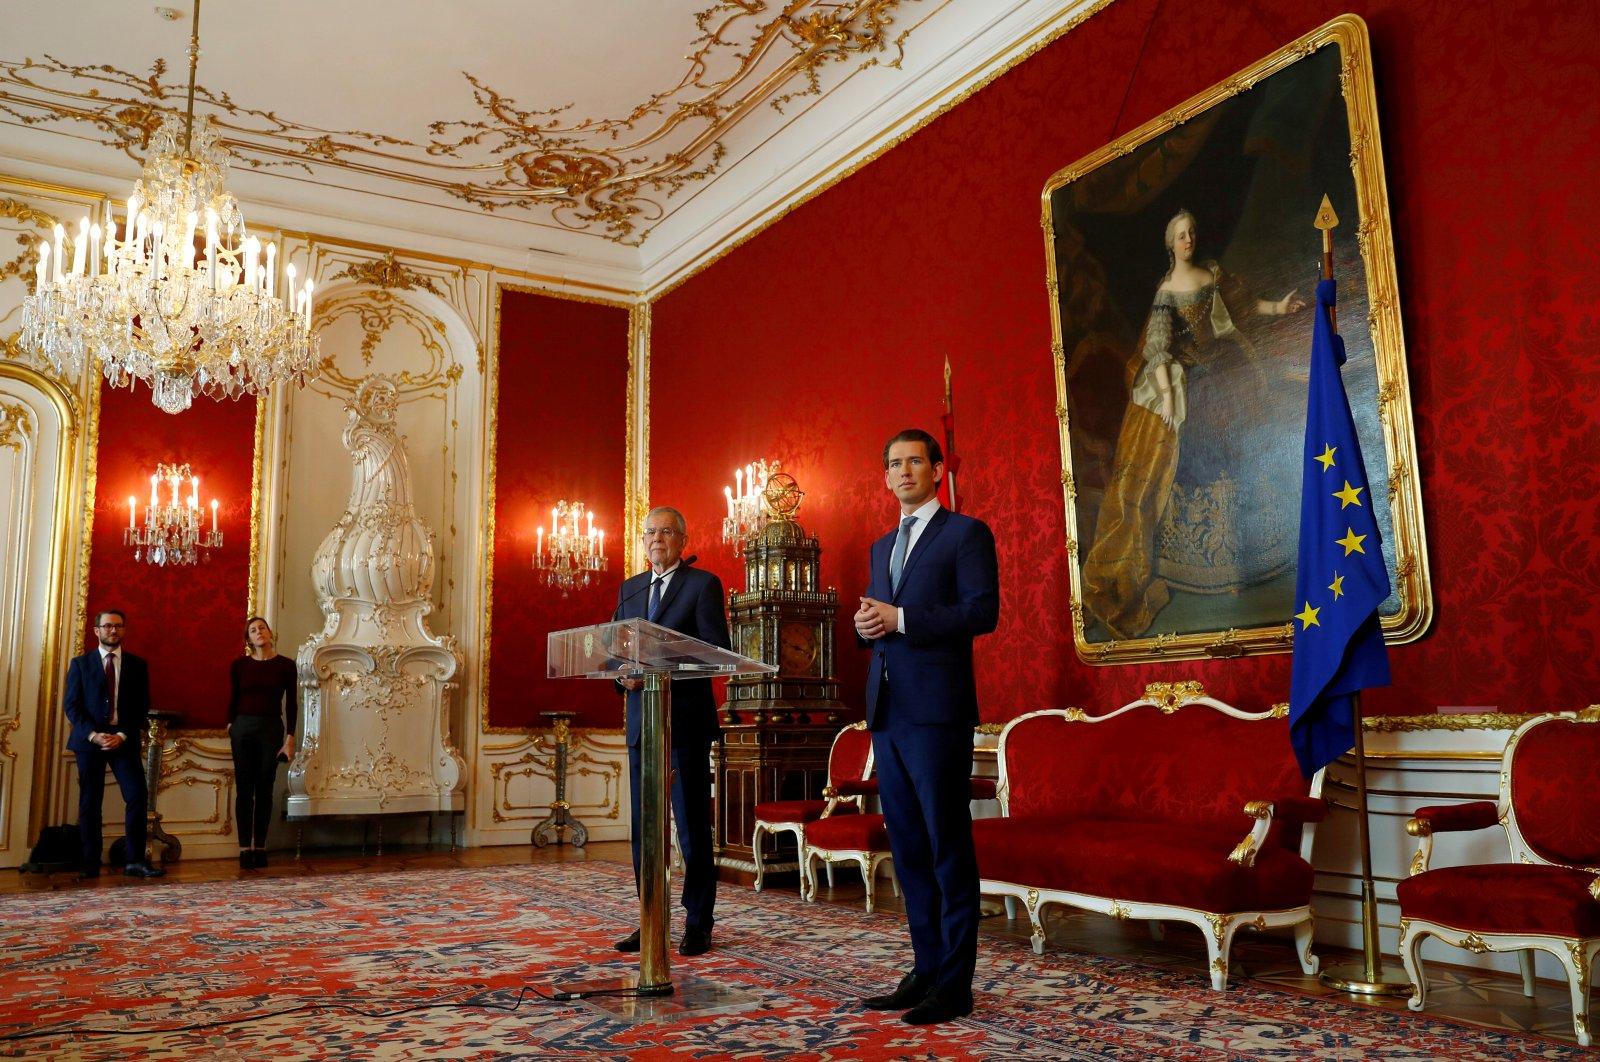 From Celebration to Crisis: The Austrian Chancellor of Exclusion